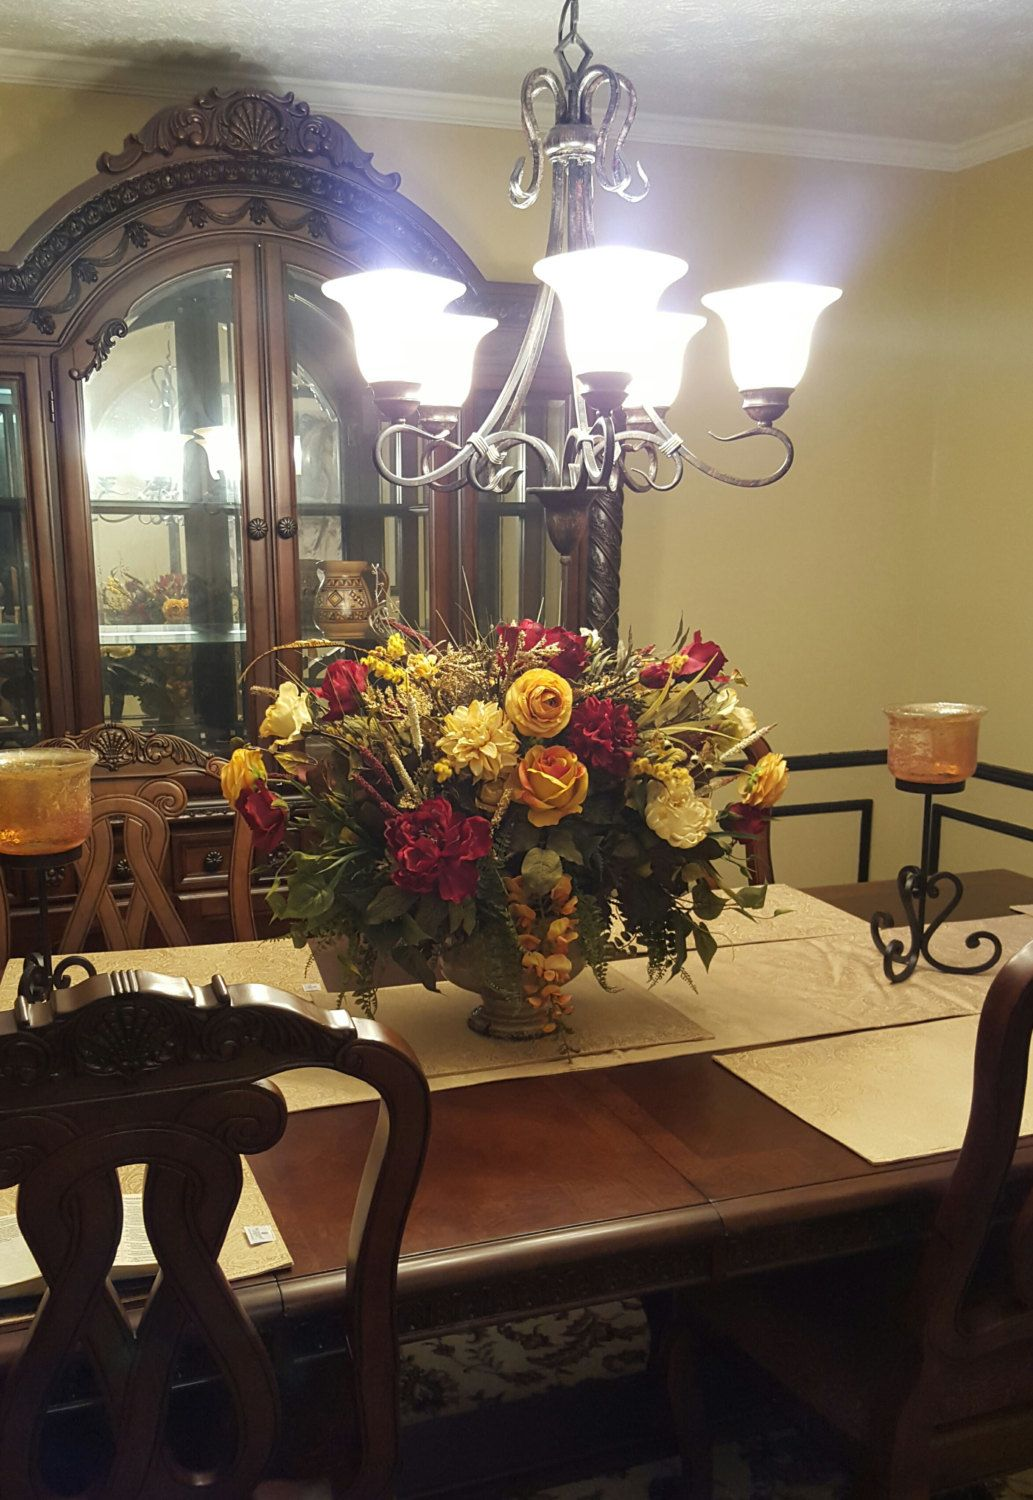 Floral Arrangement Floral Centerpiece Shipping Included Elegant Designer Tuscan Table Floral Arrangements Dining Room Table Centerpieces Foyer Decorating